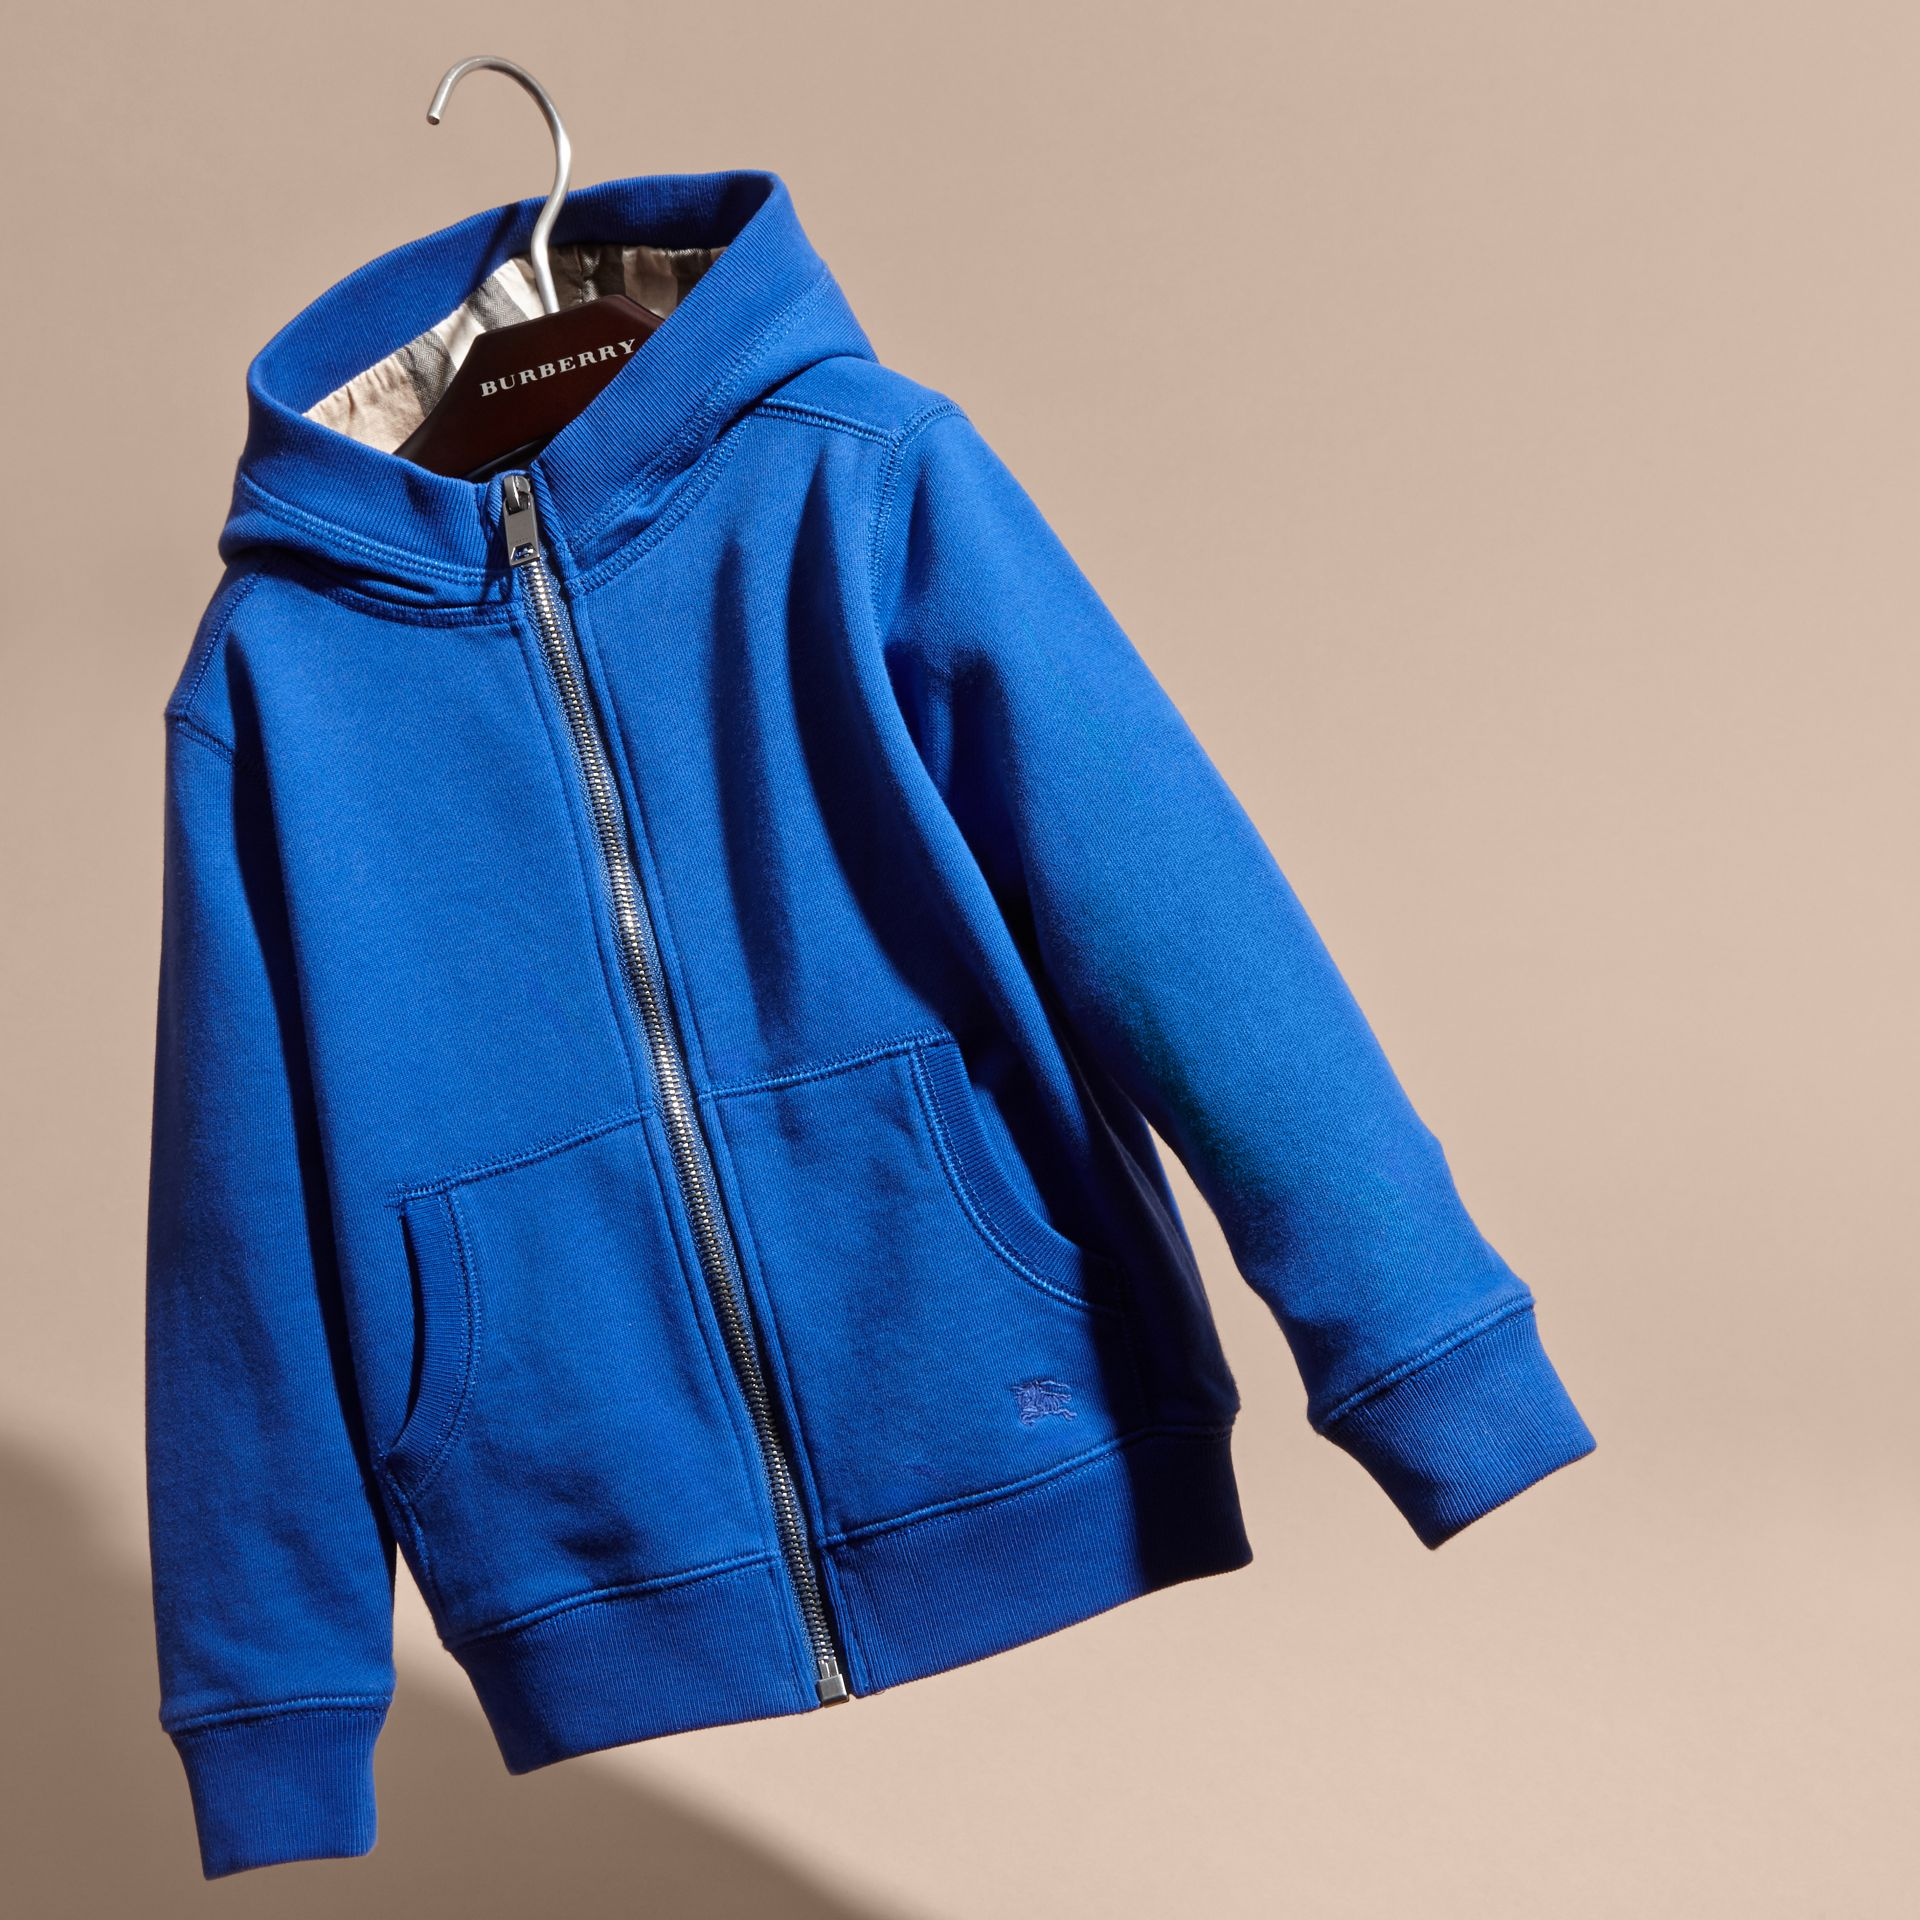 Brilliant blue Hooded Cotton Top Brilliant Blue - gallery image 3